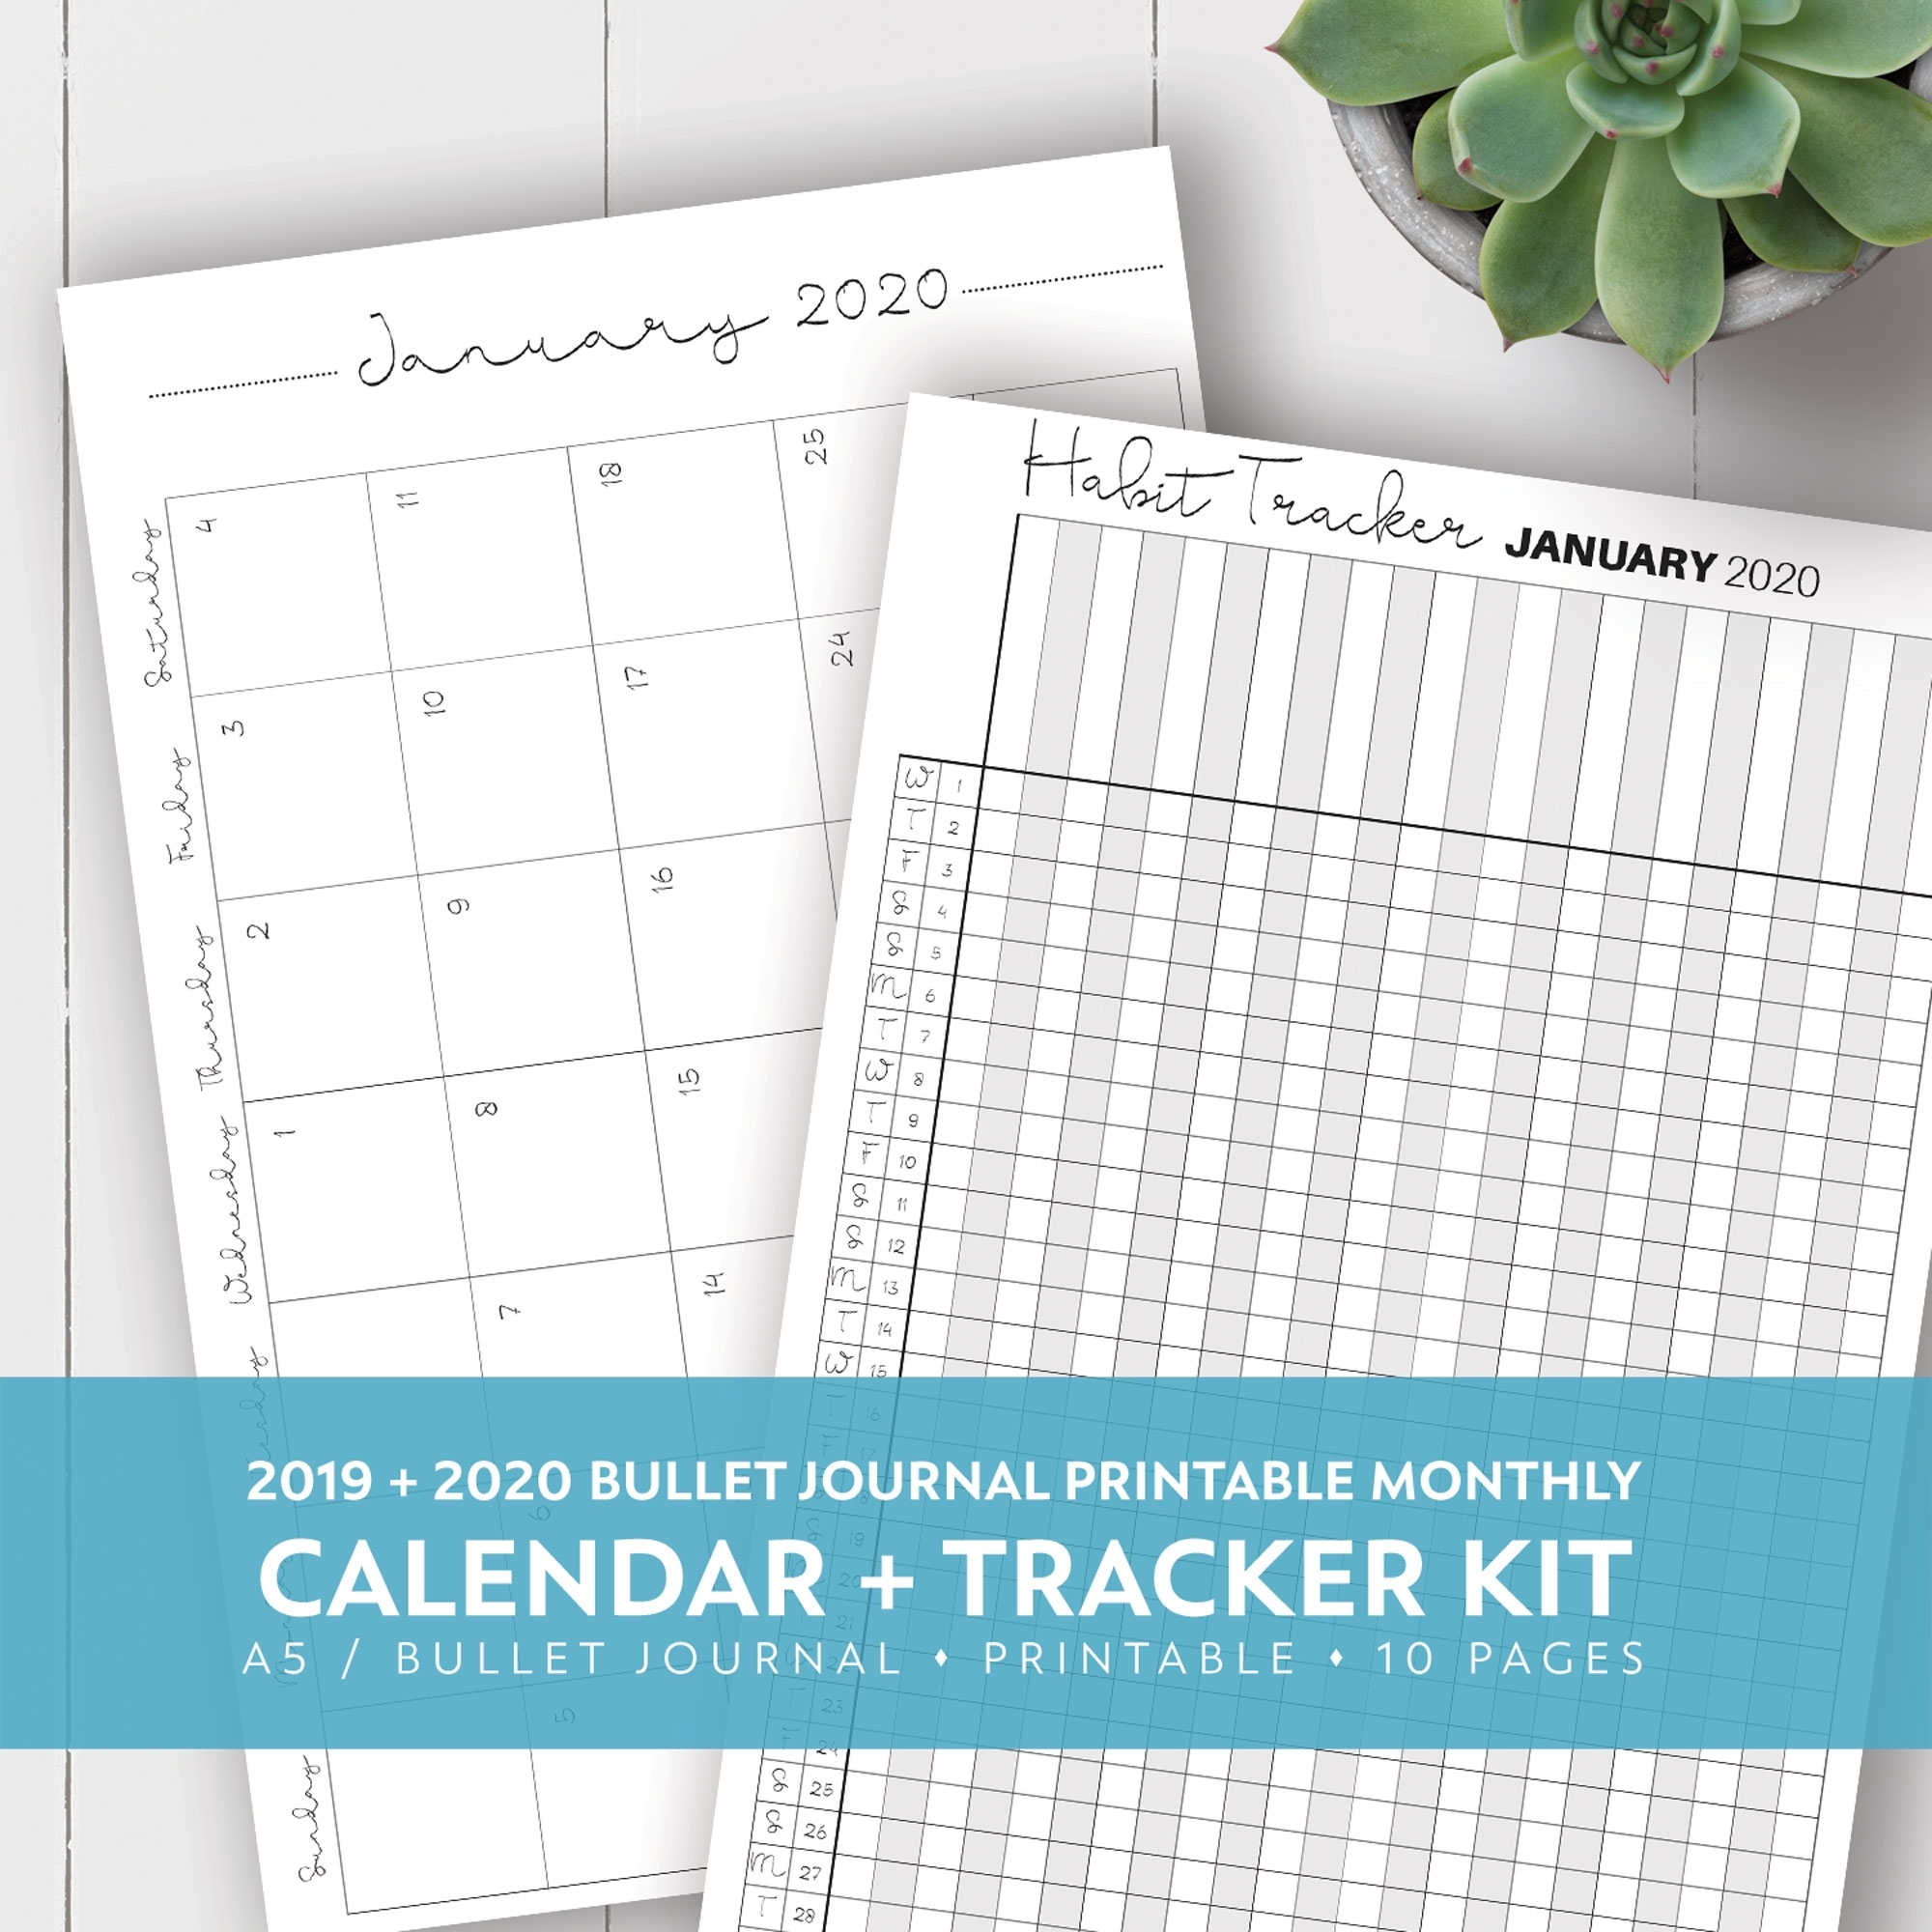 2019 + 2020 Monthly Printable Calendar + Habit Tracker Kit | Laura regarding Free Yearly 5.5 X 8.5 Calendar 2020